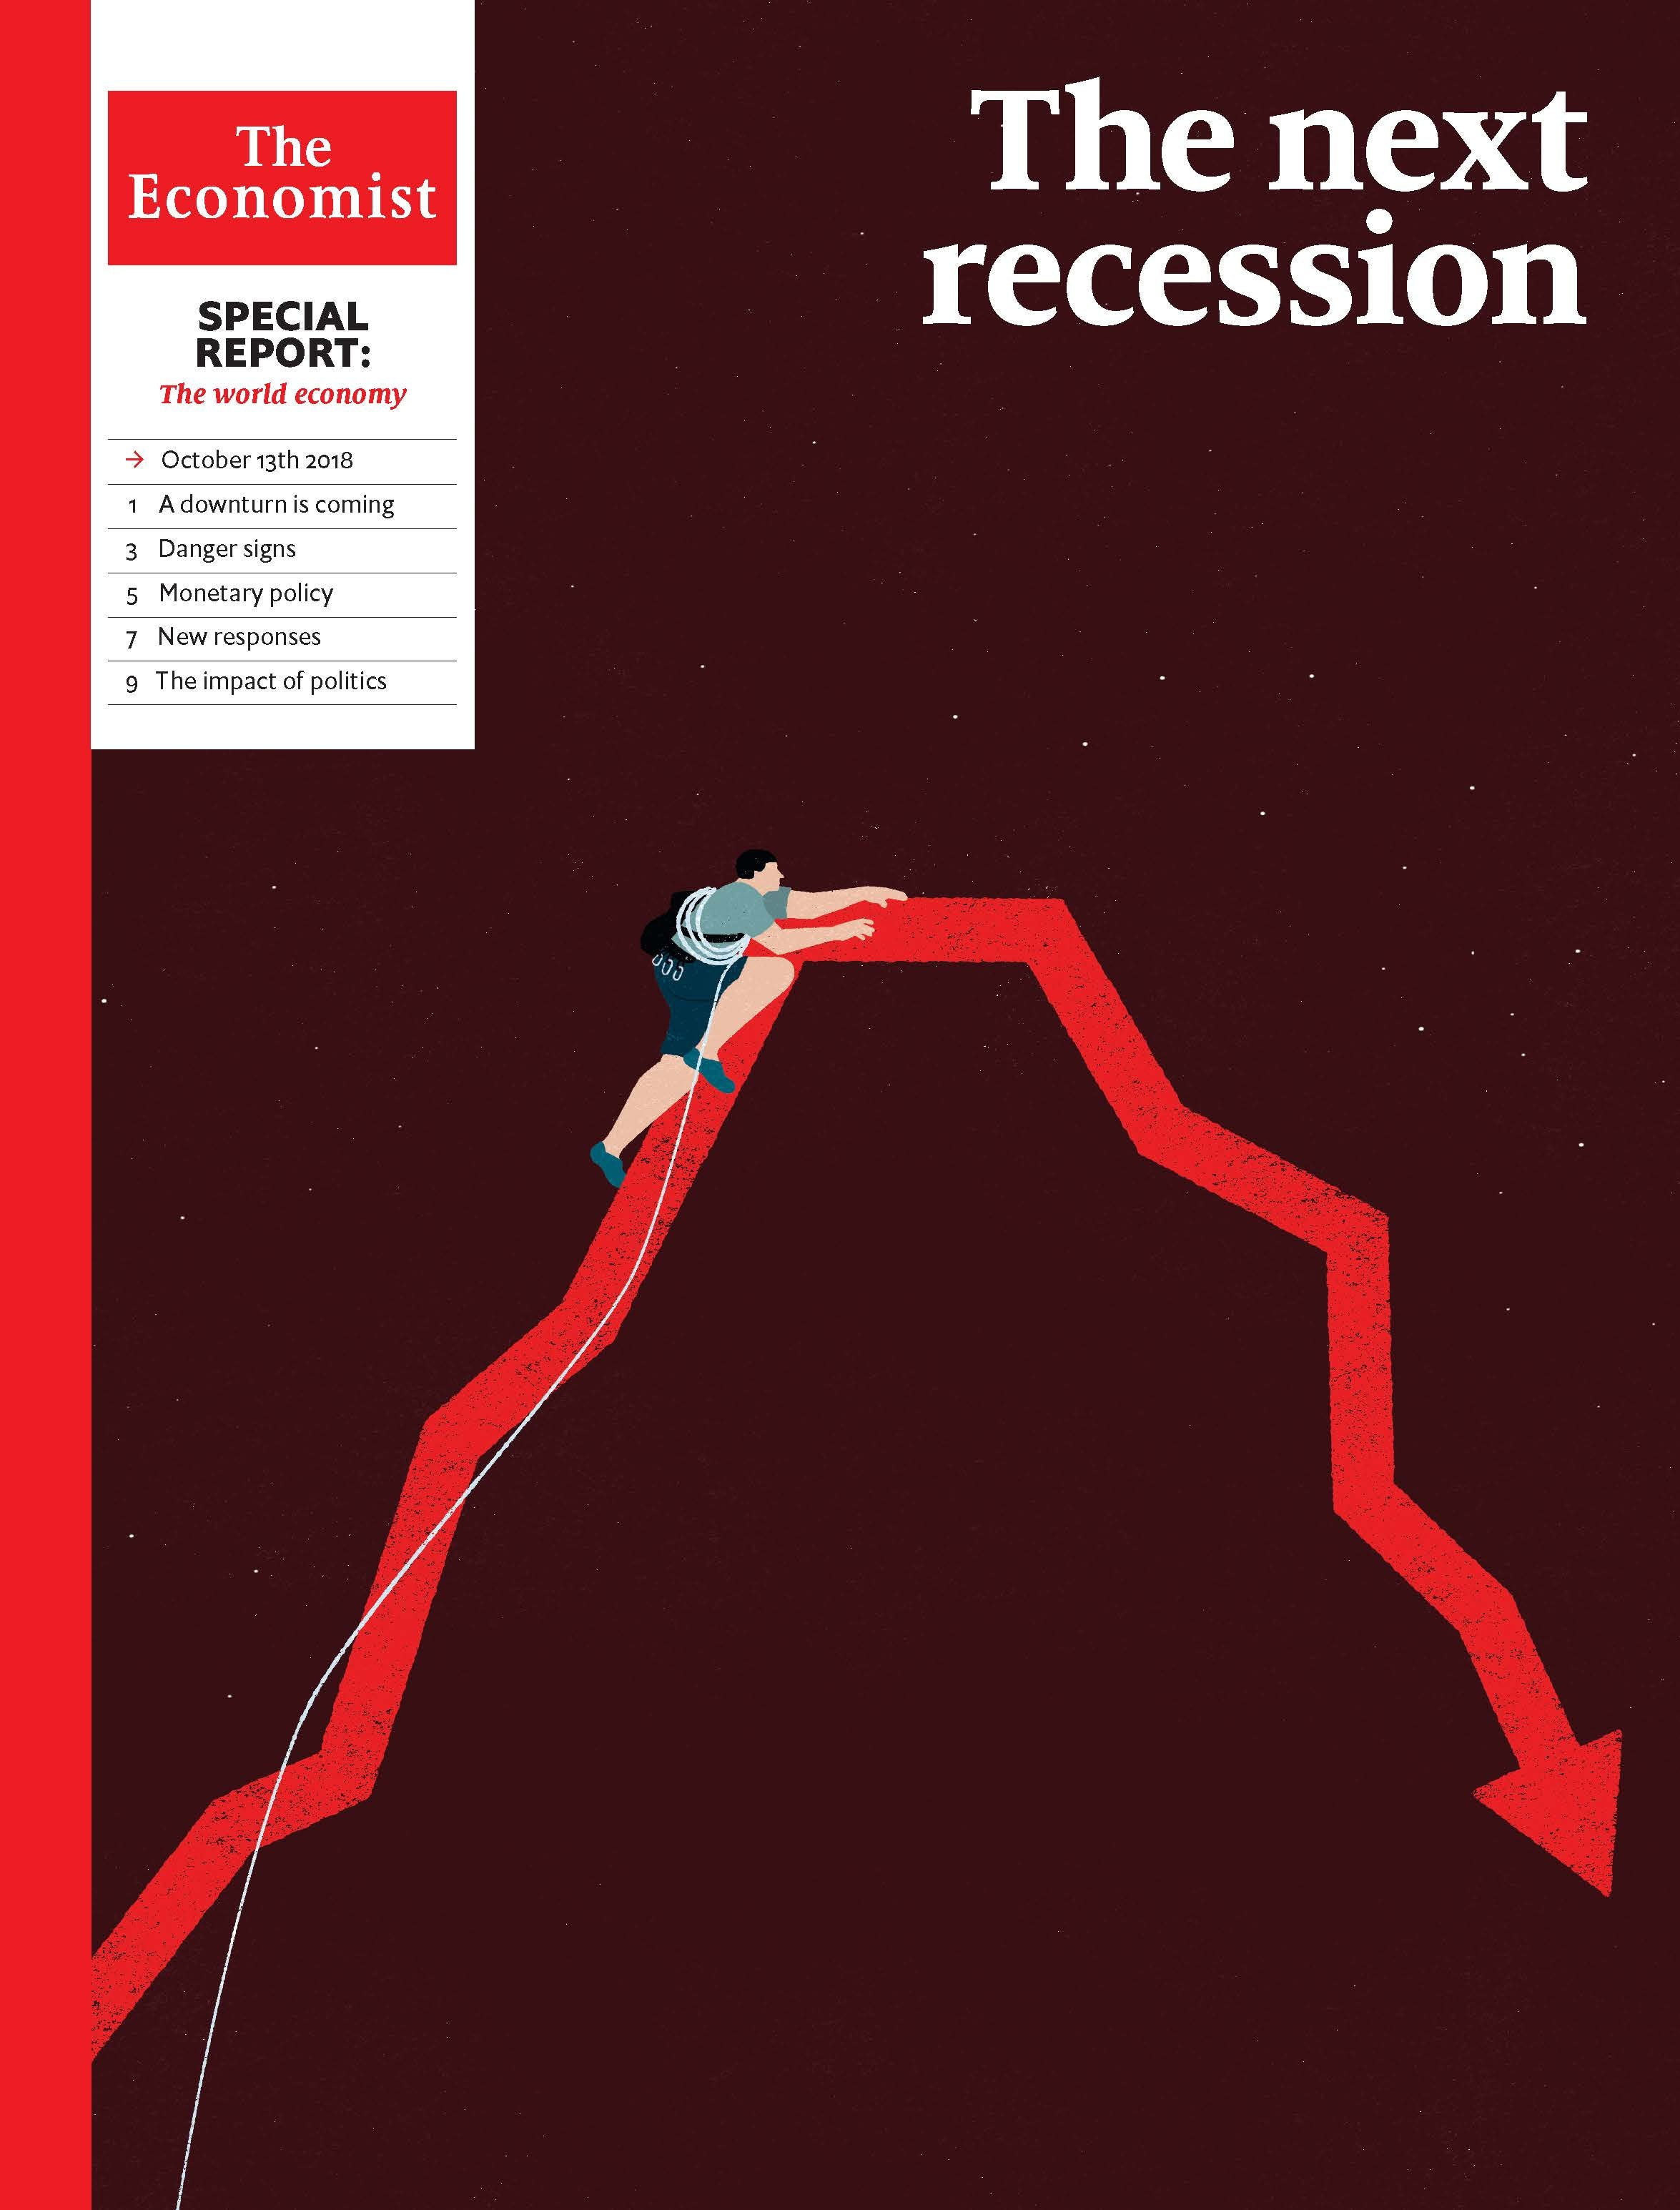 Special Report on The next recession